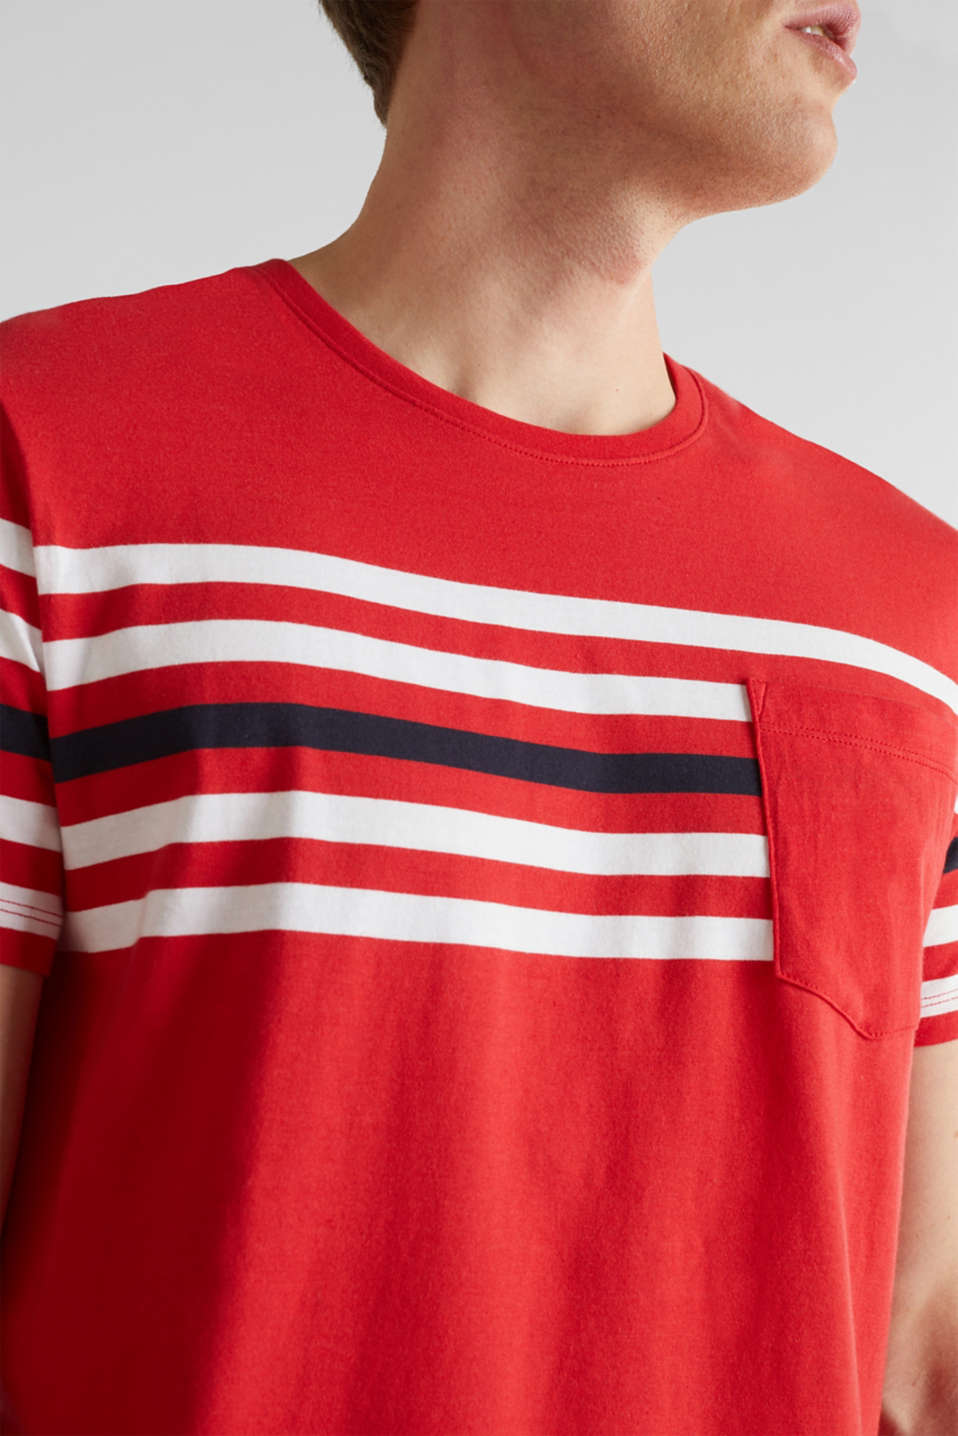 Jersey T-shirt with stripes, 100% cotton, RED 3, detail image number 1